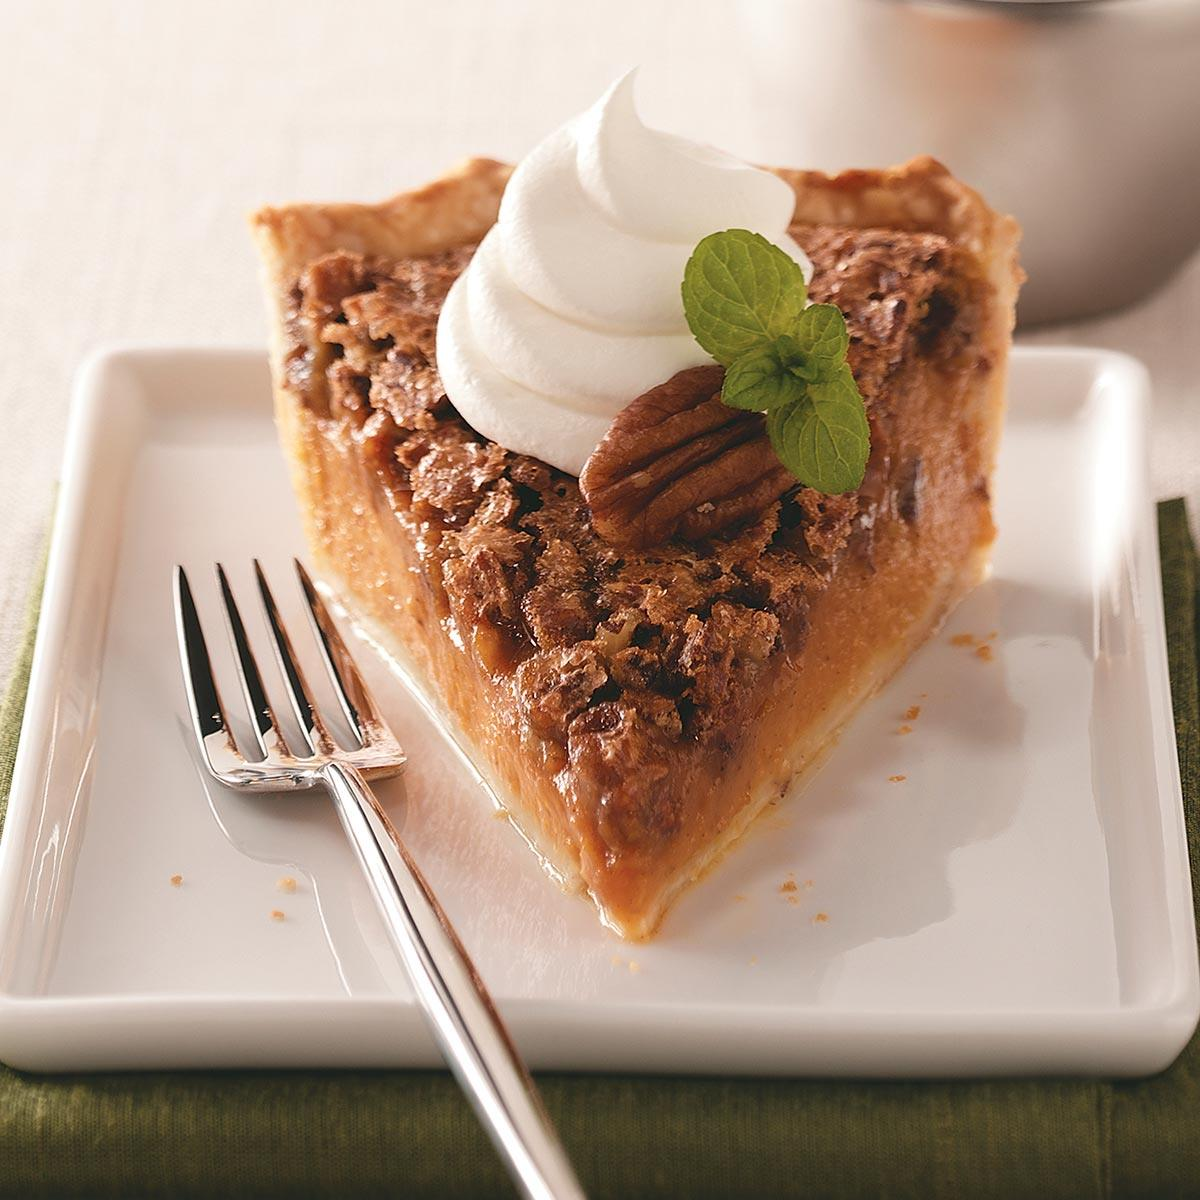 Communication on this topic: Pumpkin Pie with Pecan-Caramel Topping, pumpkin-pie-with-pecan-caramel-topping/